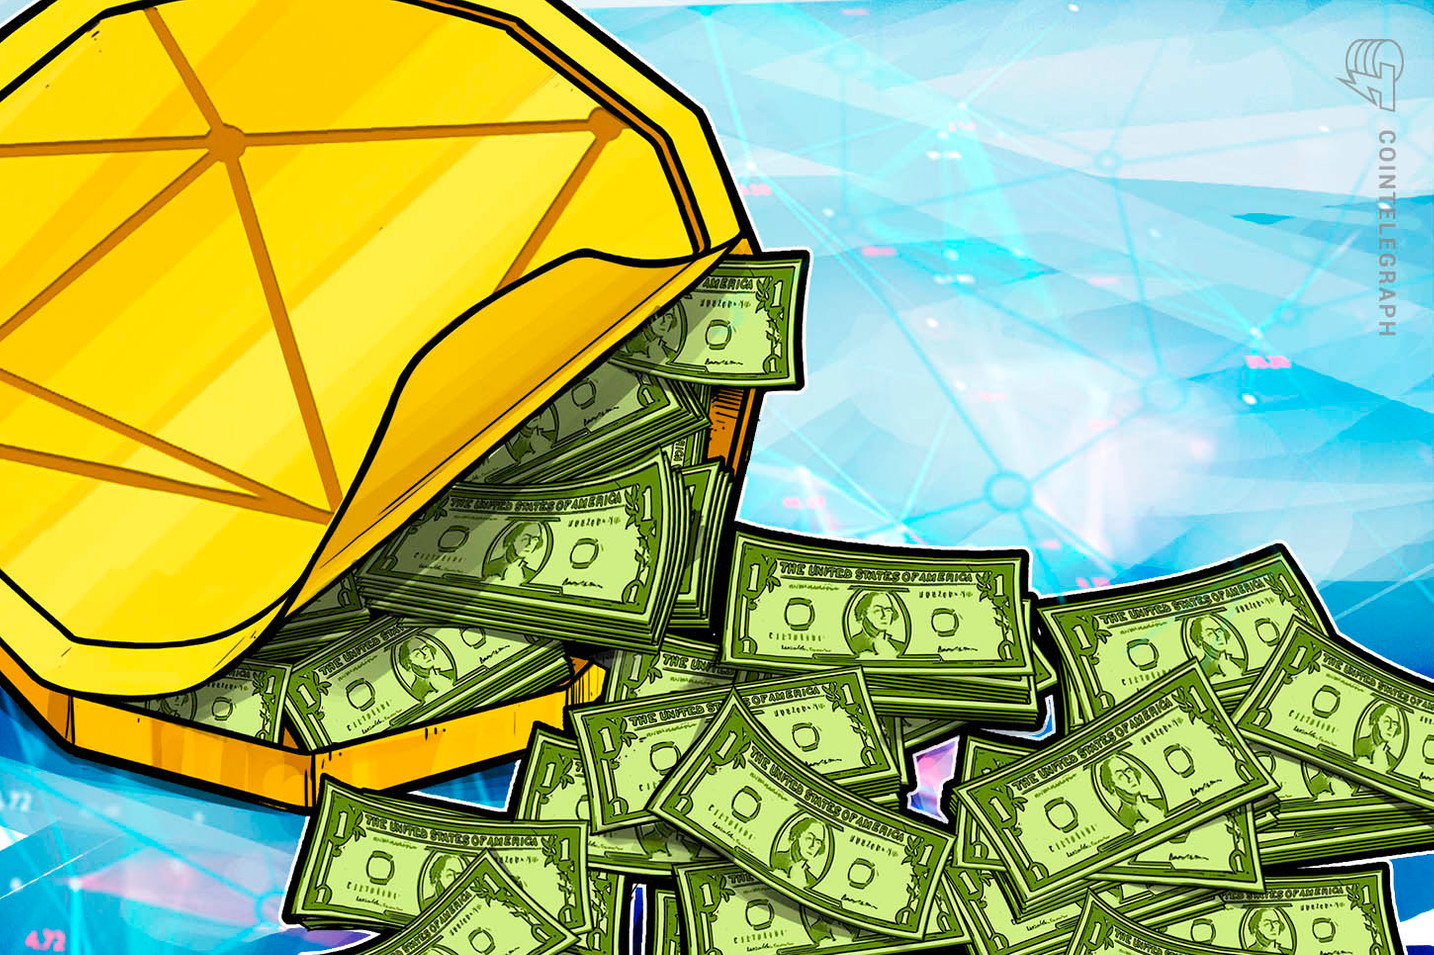 IMF Urges Marshall Islands to Reconsider Adopting Digital Currency as Second Legal Tender